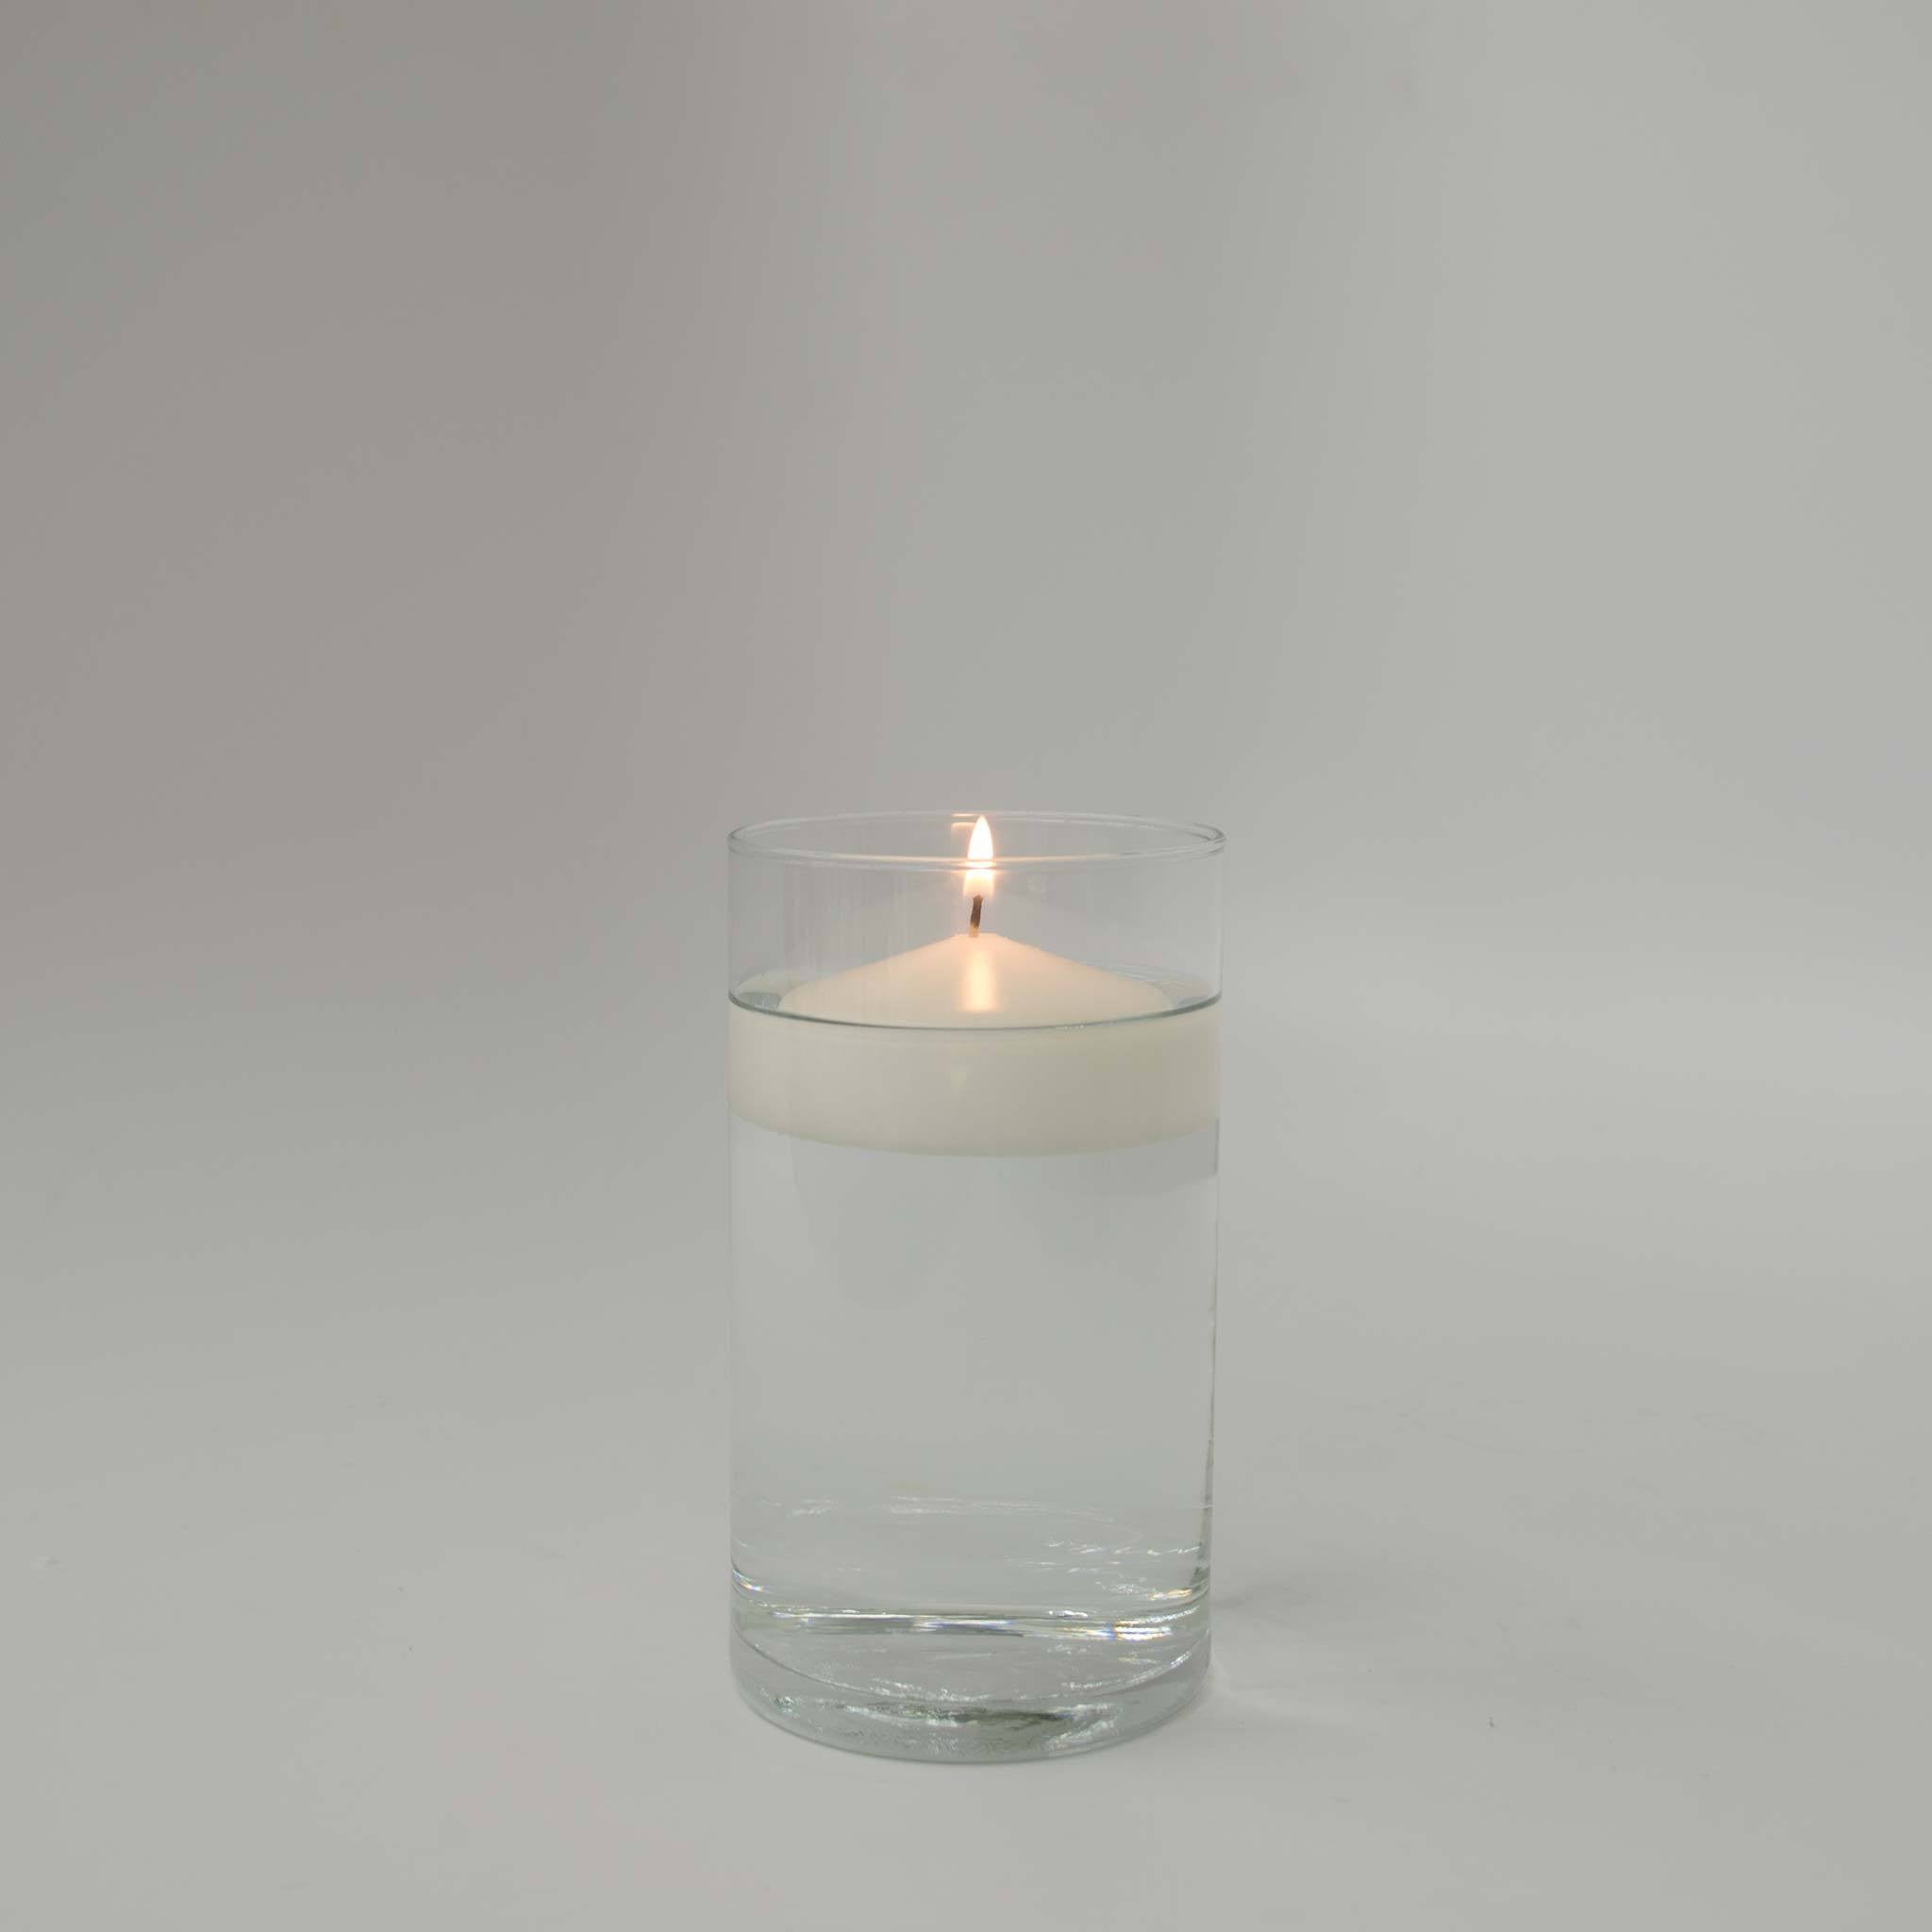 "Ivory Floating Candle 3"" (Case of 12) Candles Candlemart.com $ 9.99"